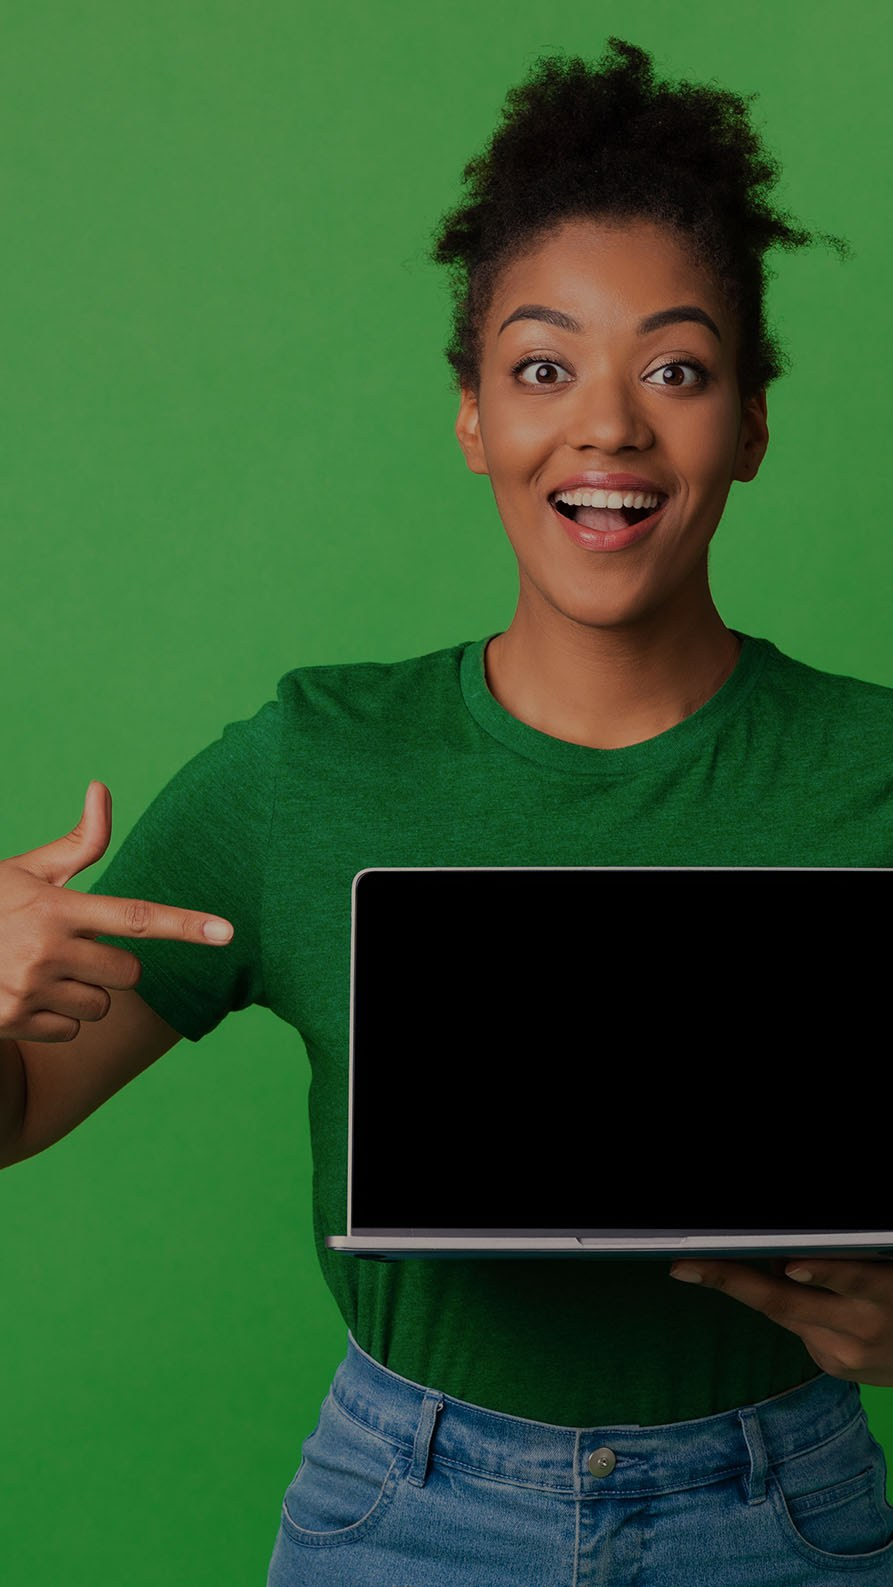 A photo of a woman smiling and pointing to a laptop enthusiastically. She's wearing a dark green T-shirt and there is a plain bright green background behind her. This photo is mildly suggestive that this article may be about websites, but it's all very figurative.